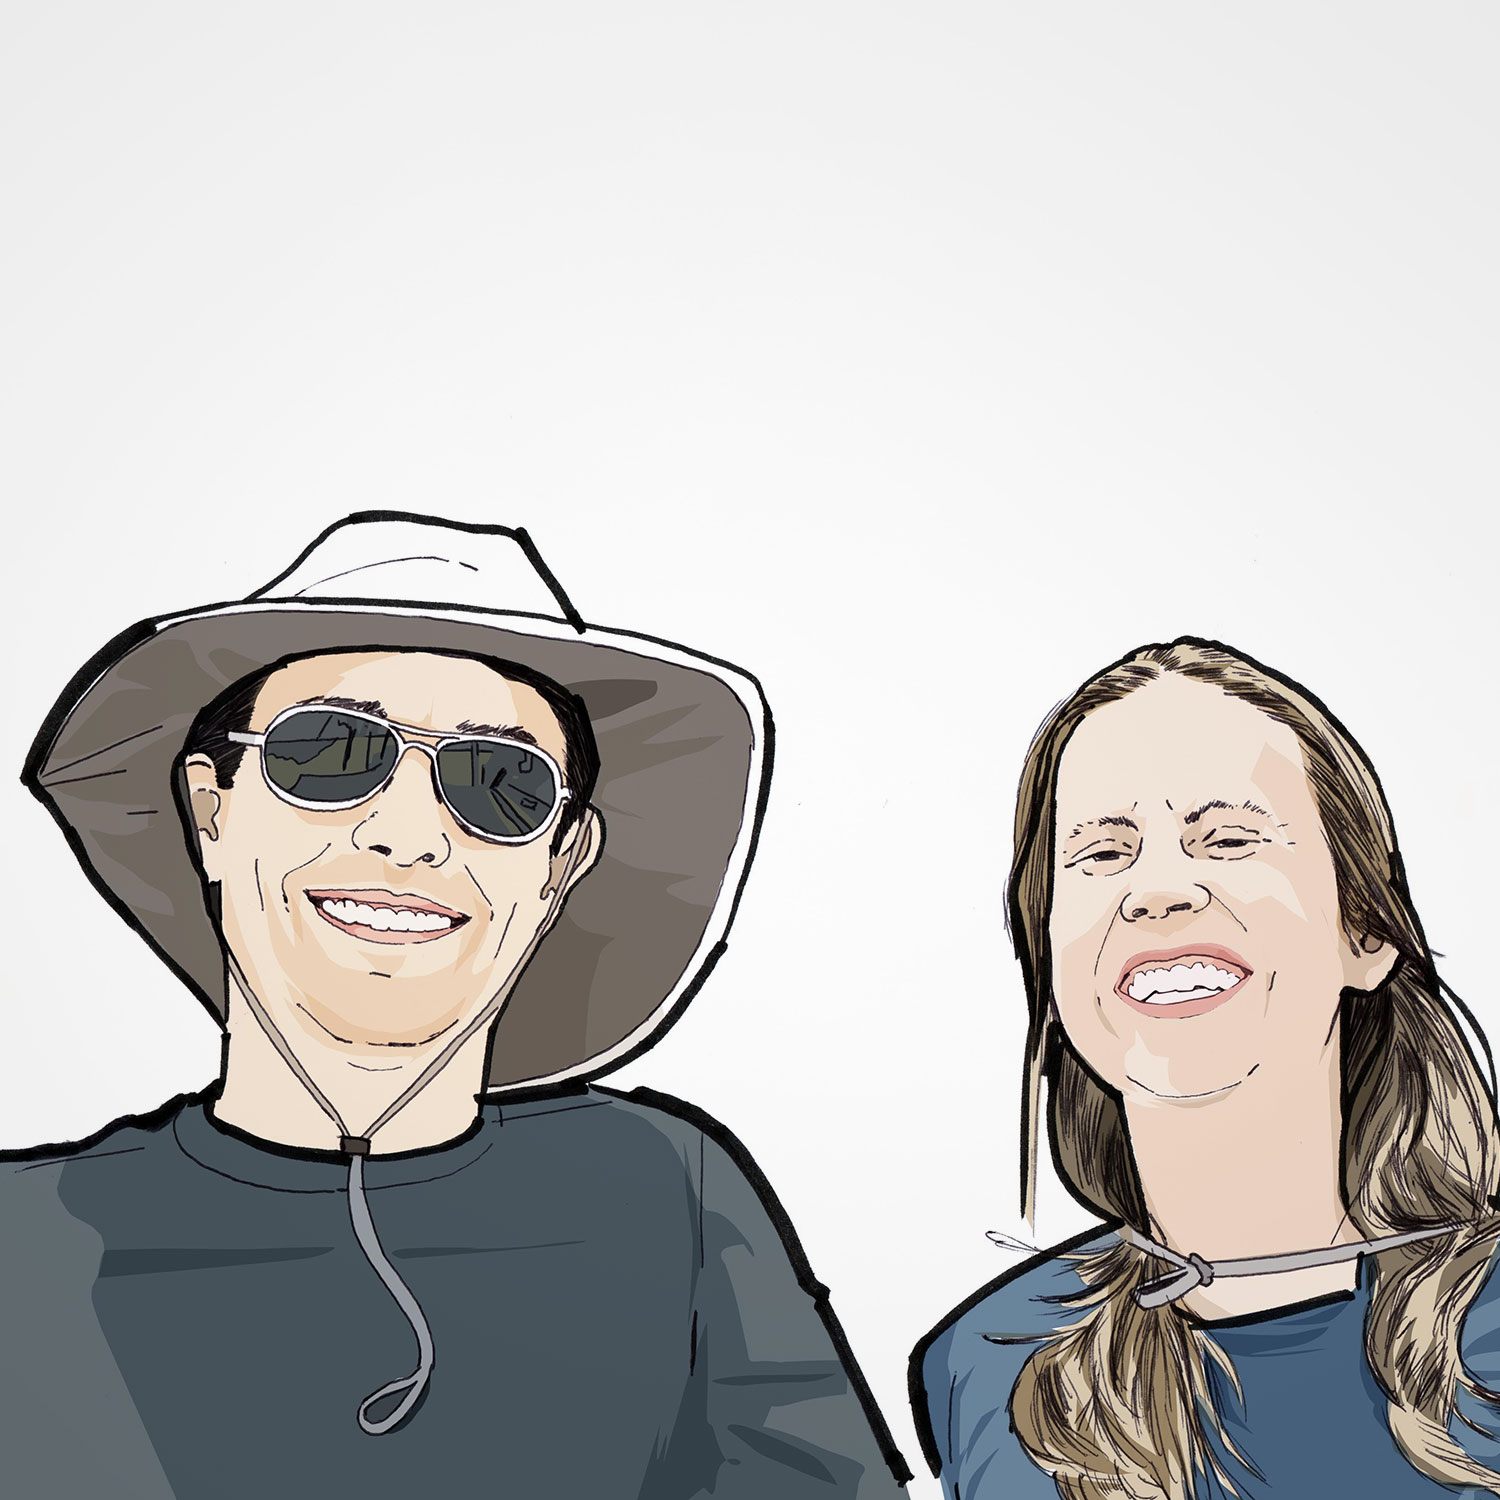 Illustration of Paulo Siqueira and Juliana Armelin